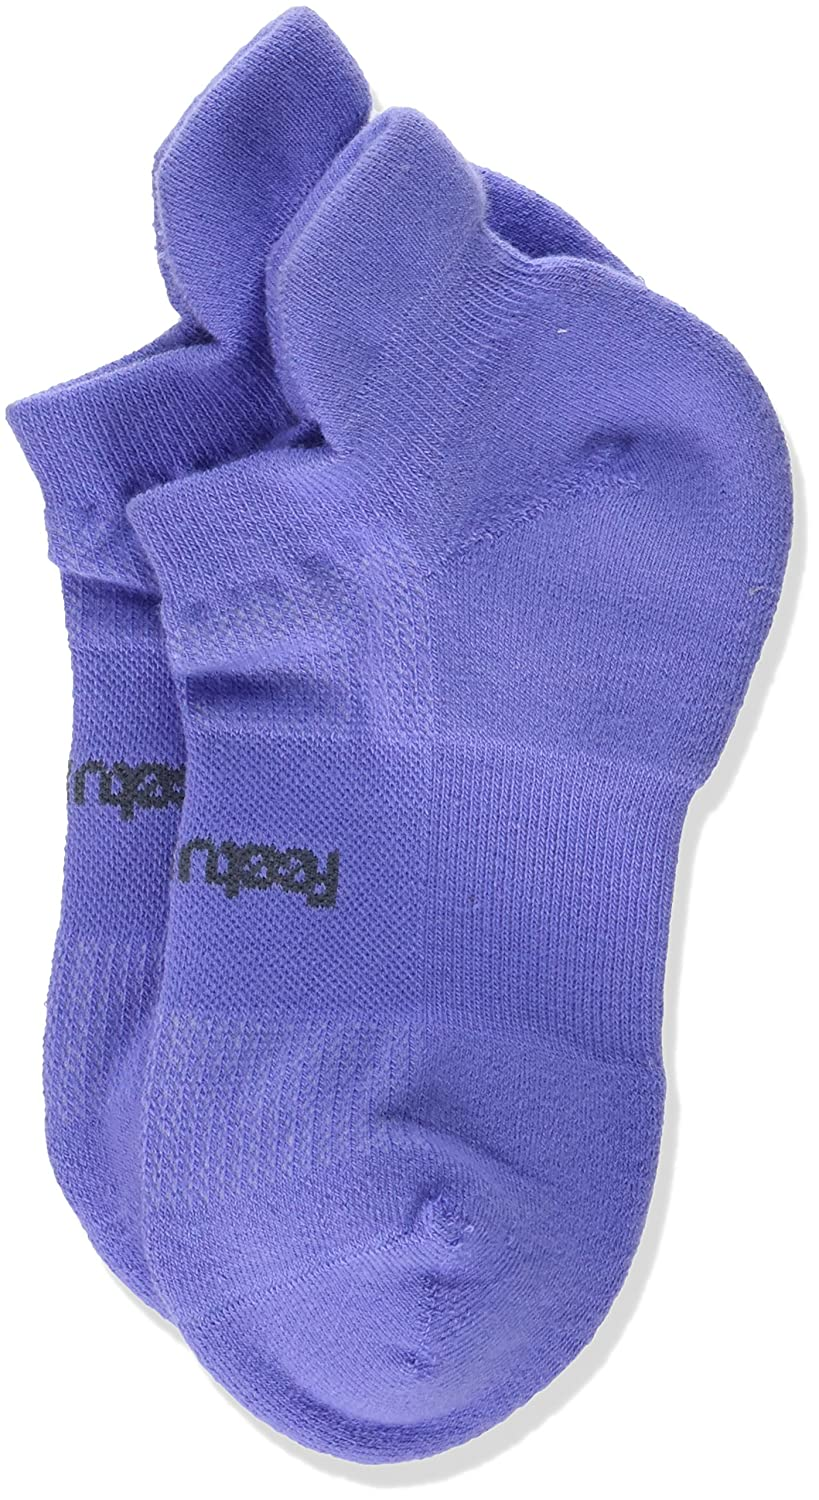 High Performance Cushion No Show Tab Athletic Running Socks for Men and Women Feetures